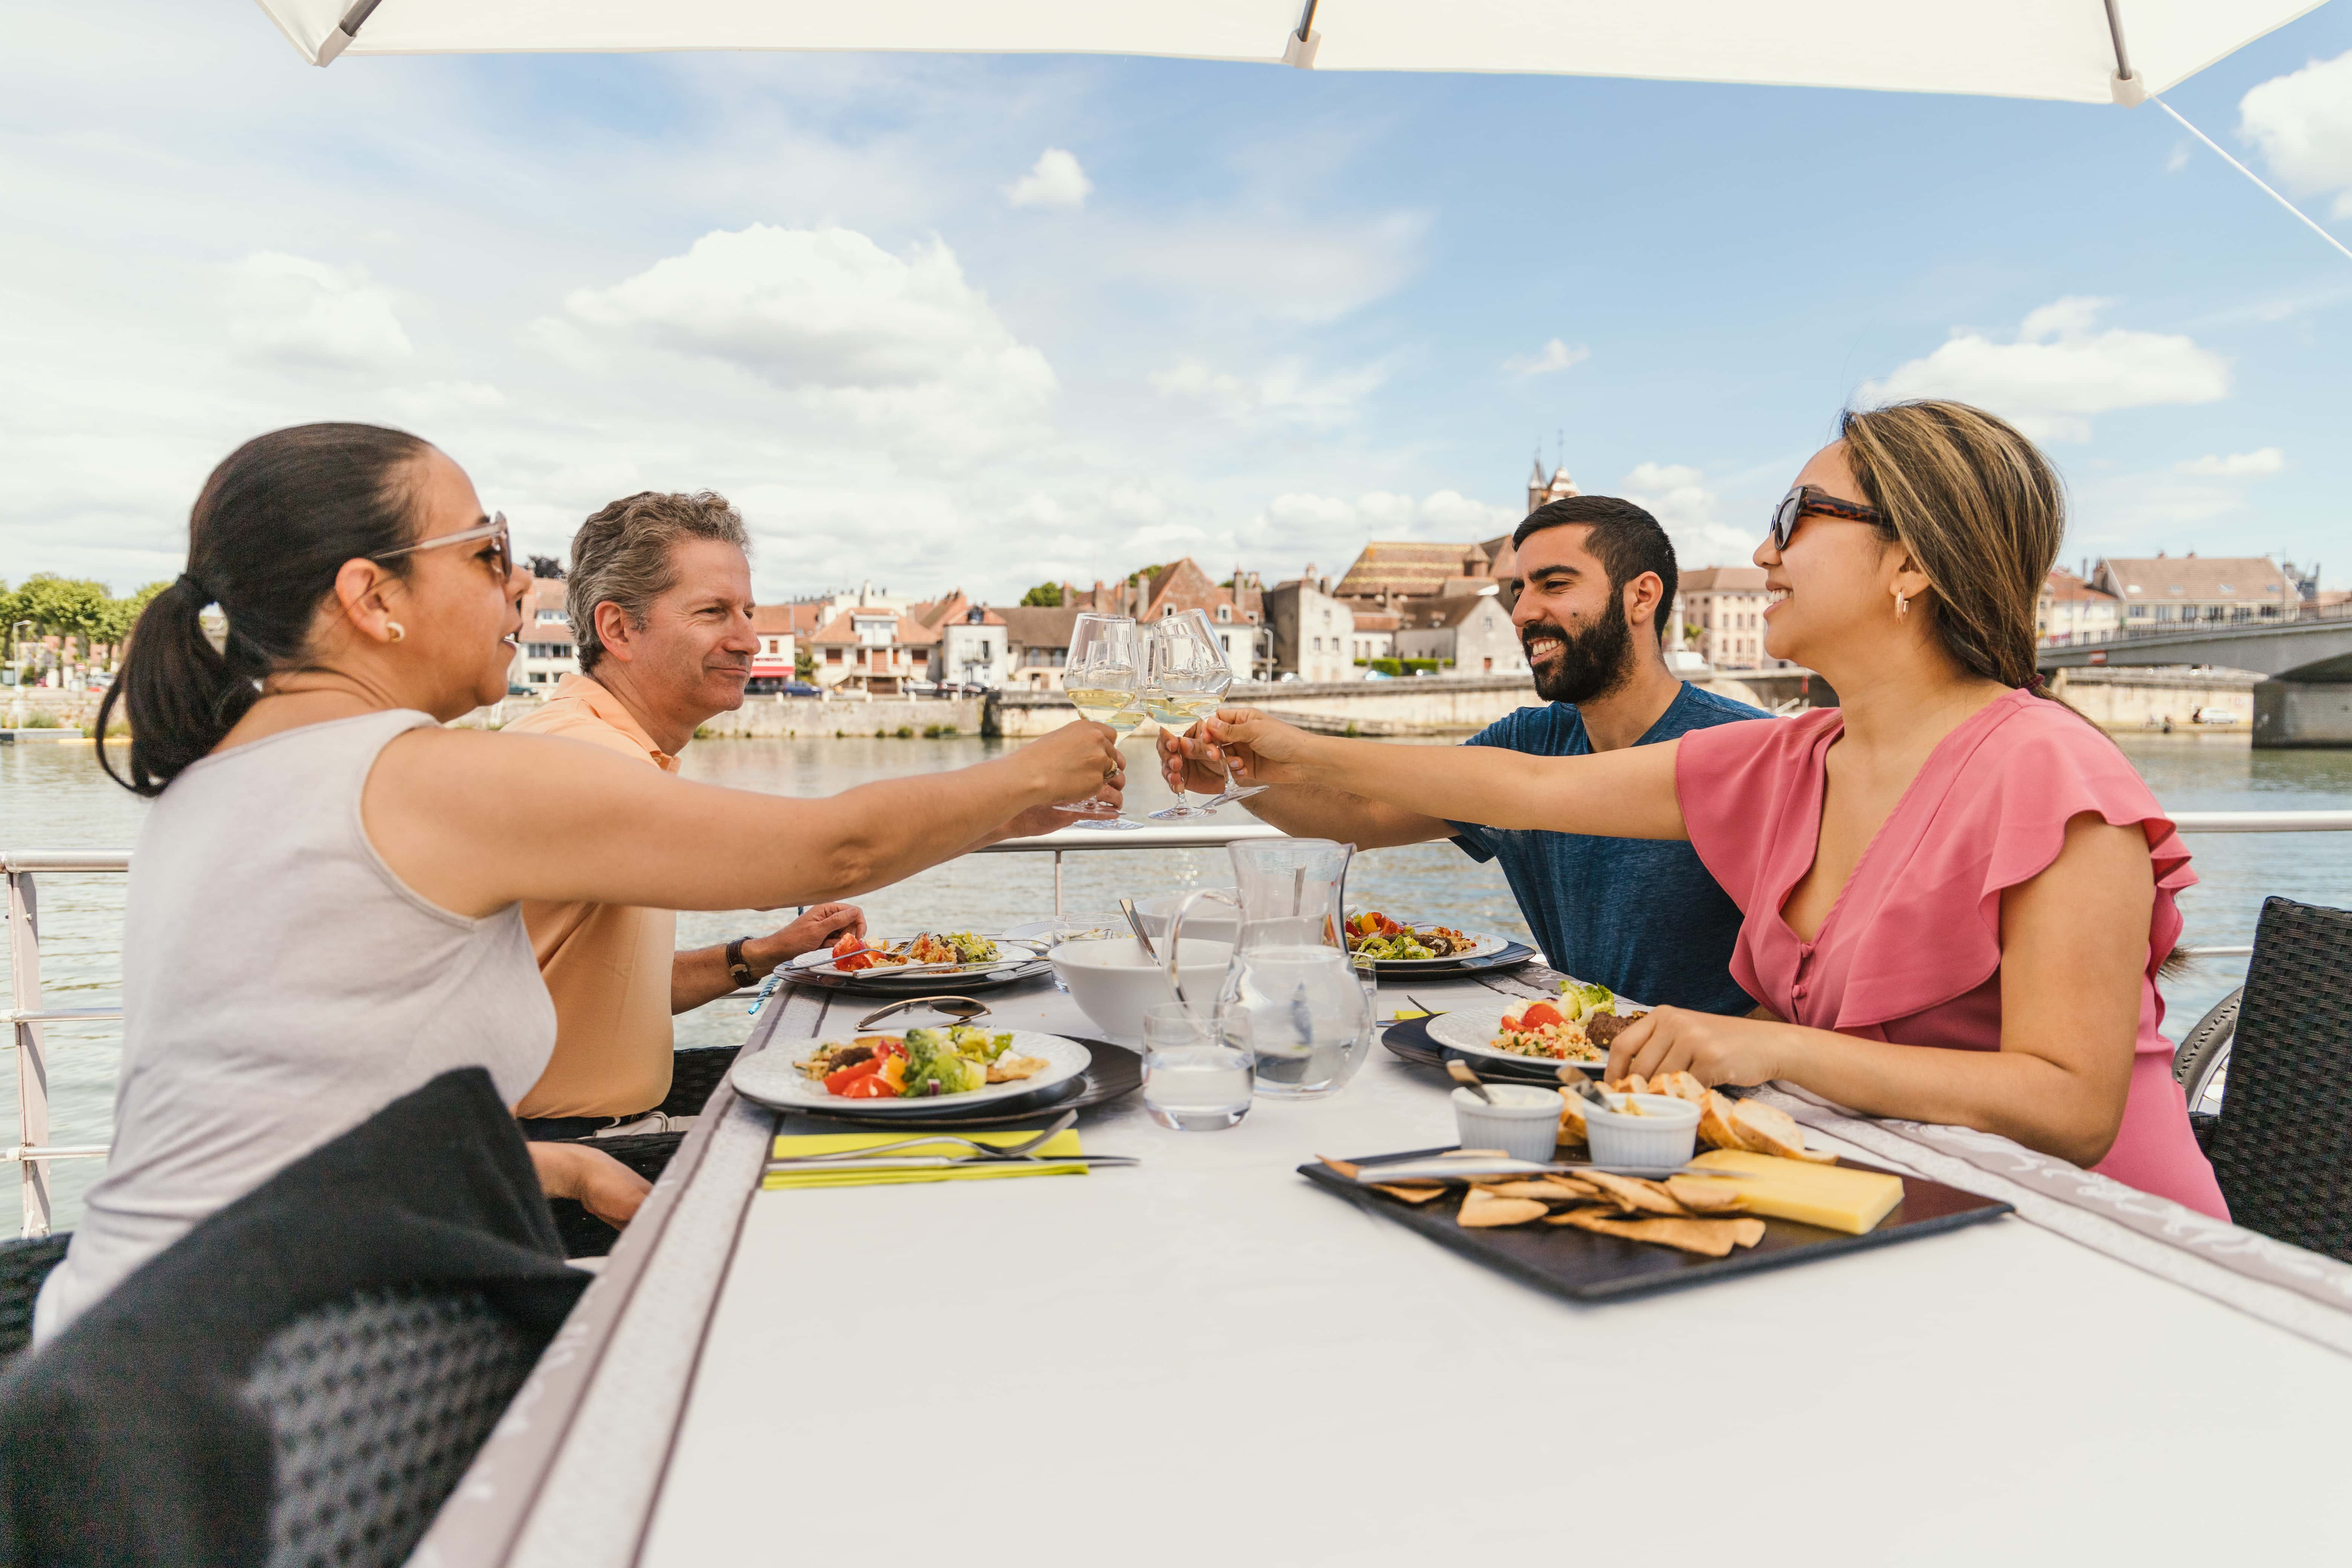 Four cruisers enjoying lunch outdoors while cruising the canals in France on Grand Victoria Cruises